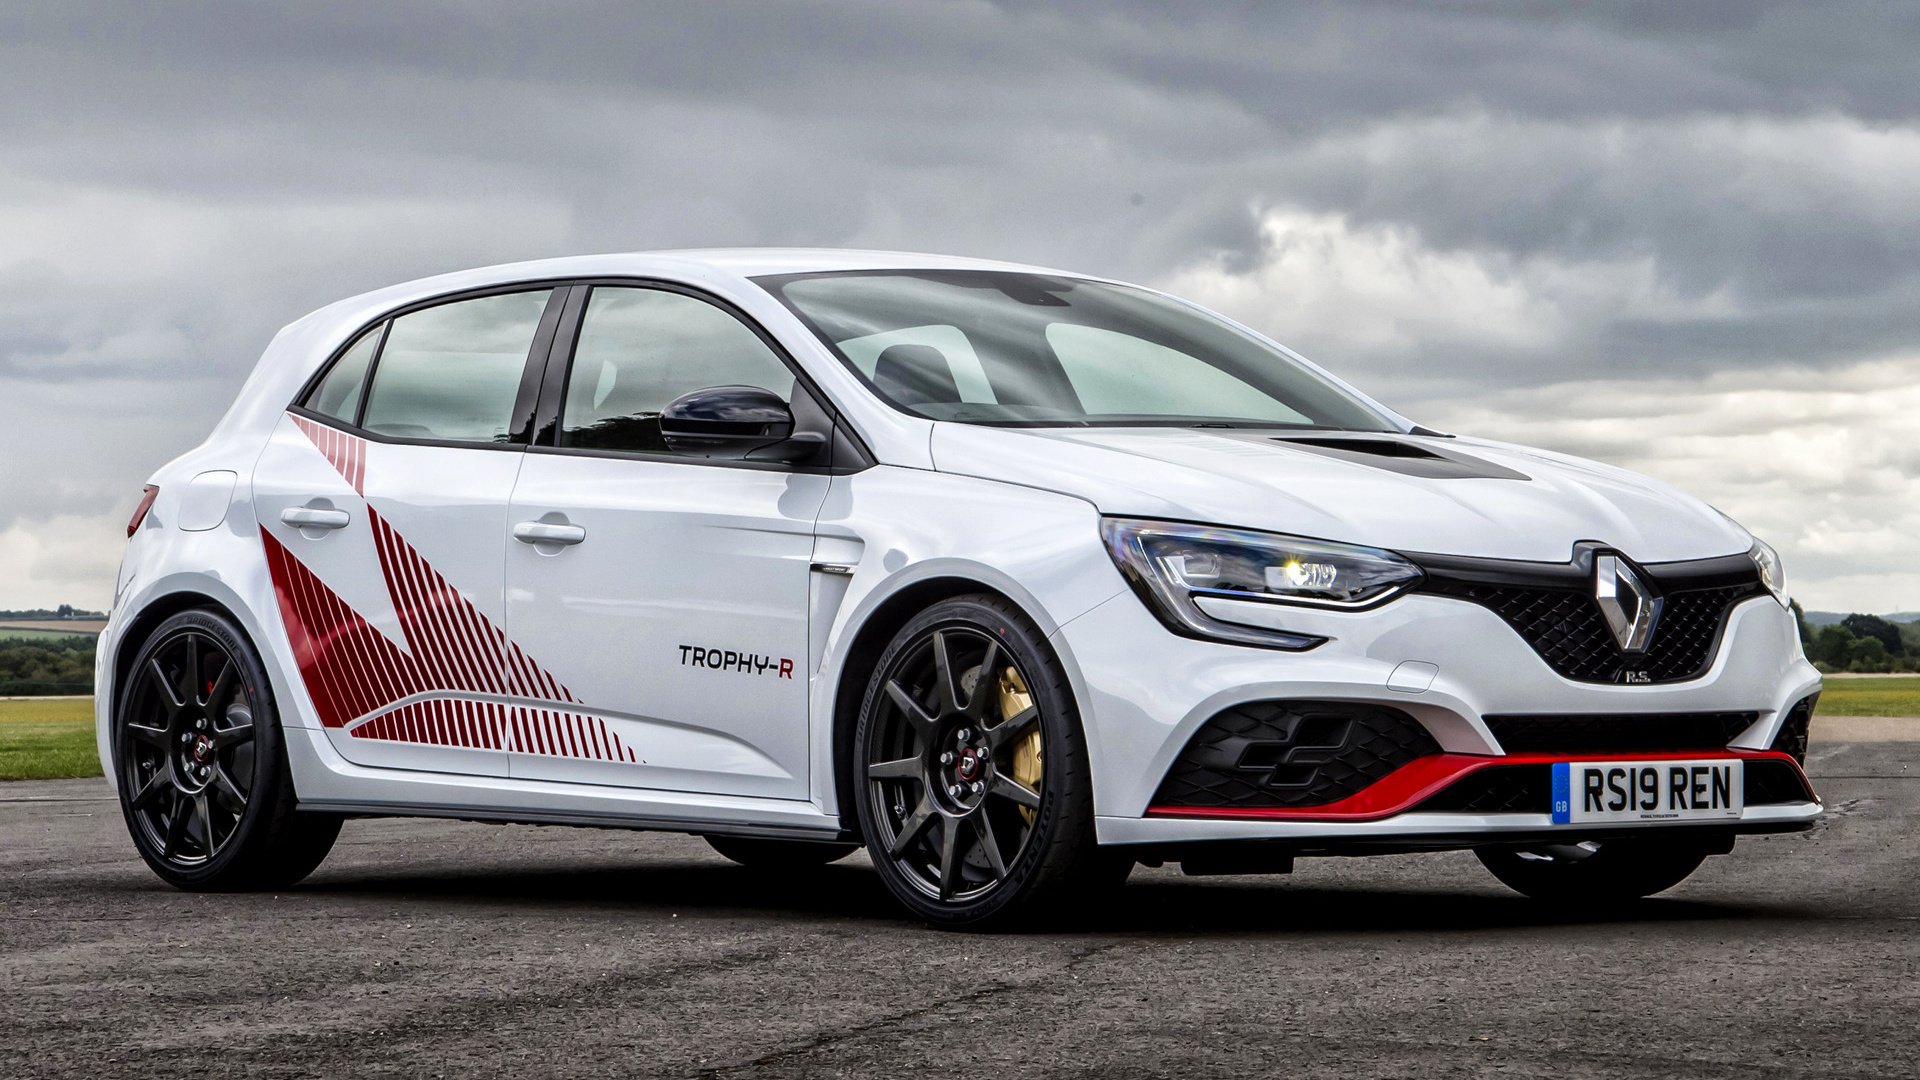 2019 Renault Megane Rs Trophy R Hd Wallpaper Background Image 1920x1080 Id 1045358 Wallpaper Abyss